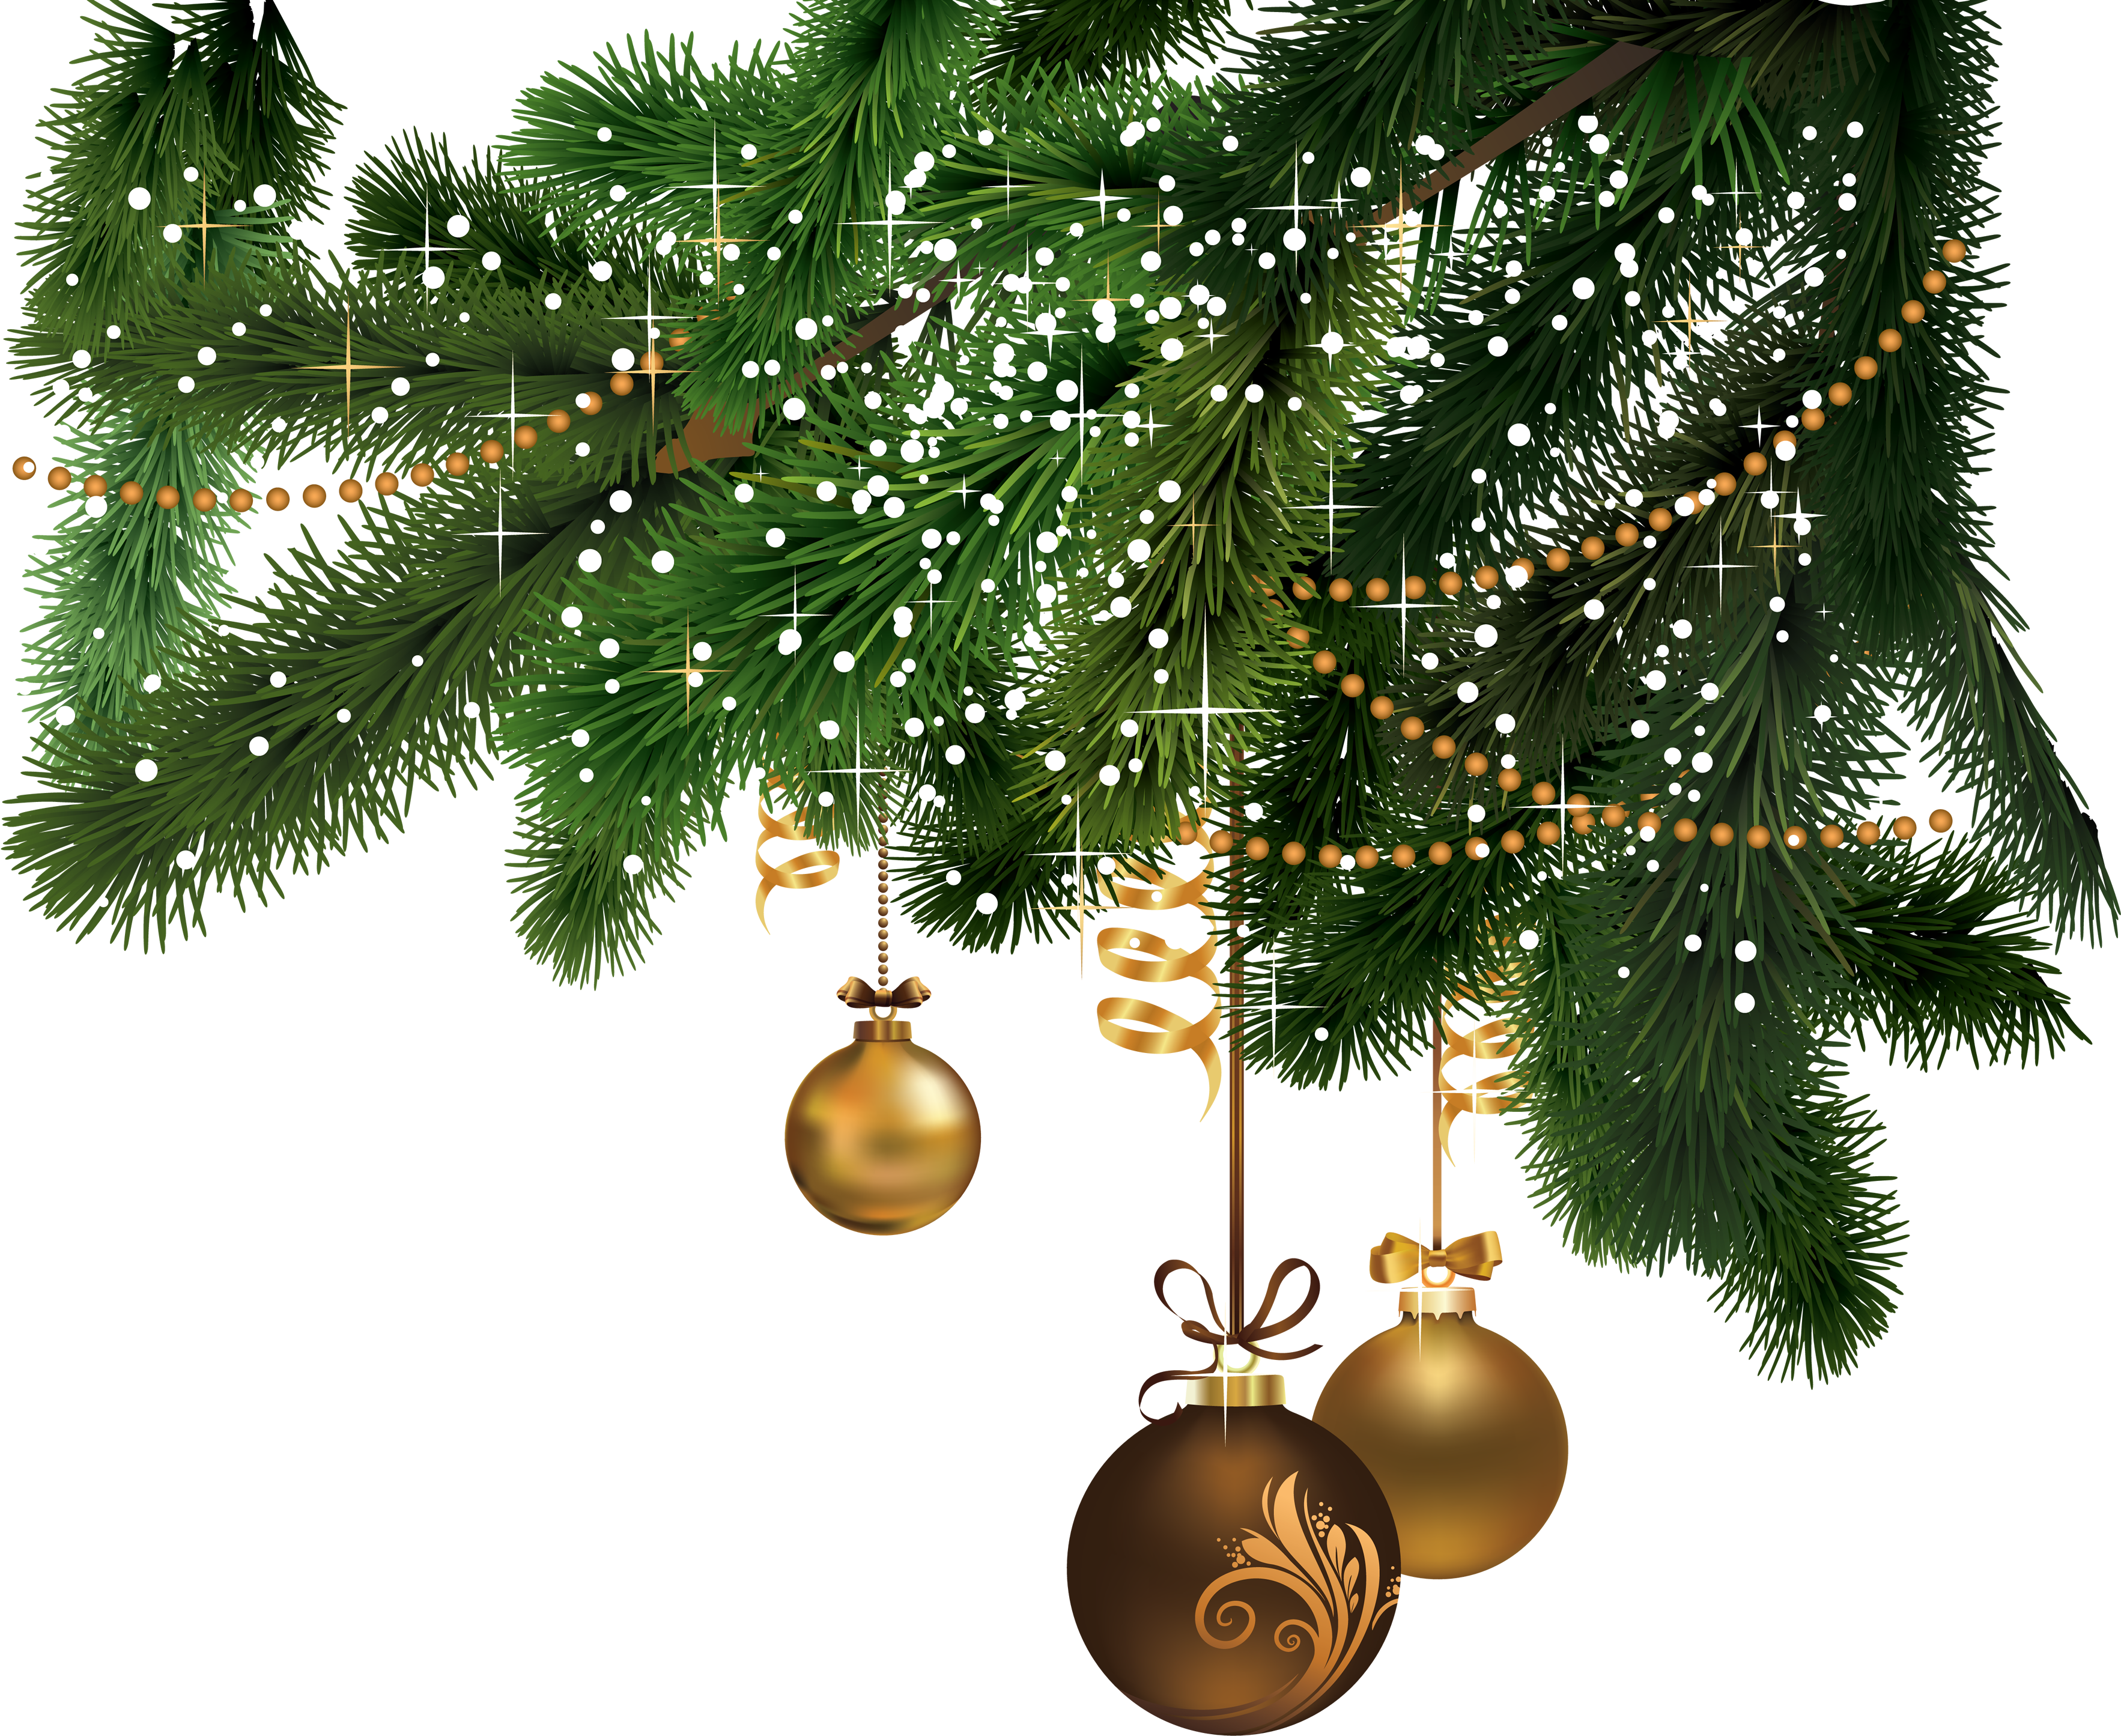 Png christmas images. Download firtree image